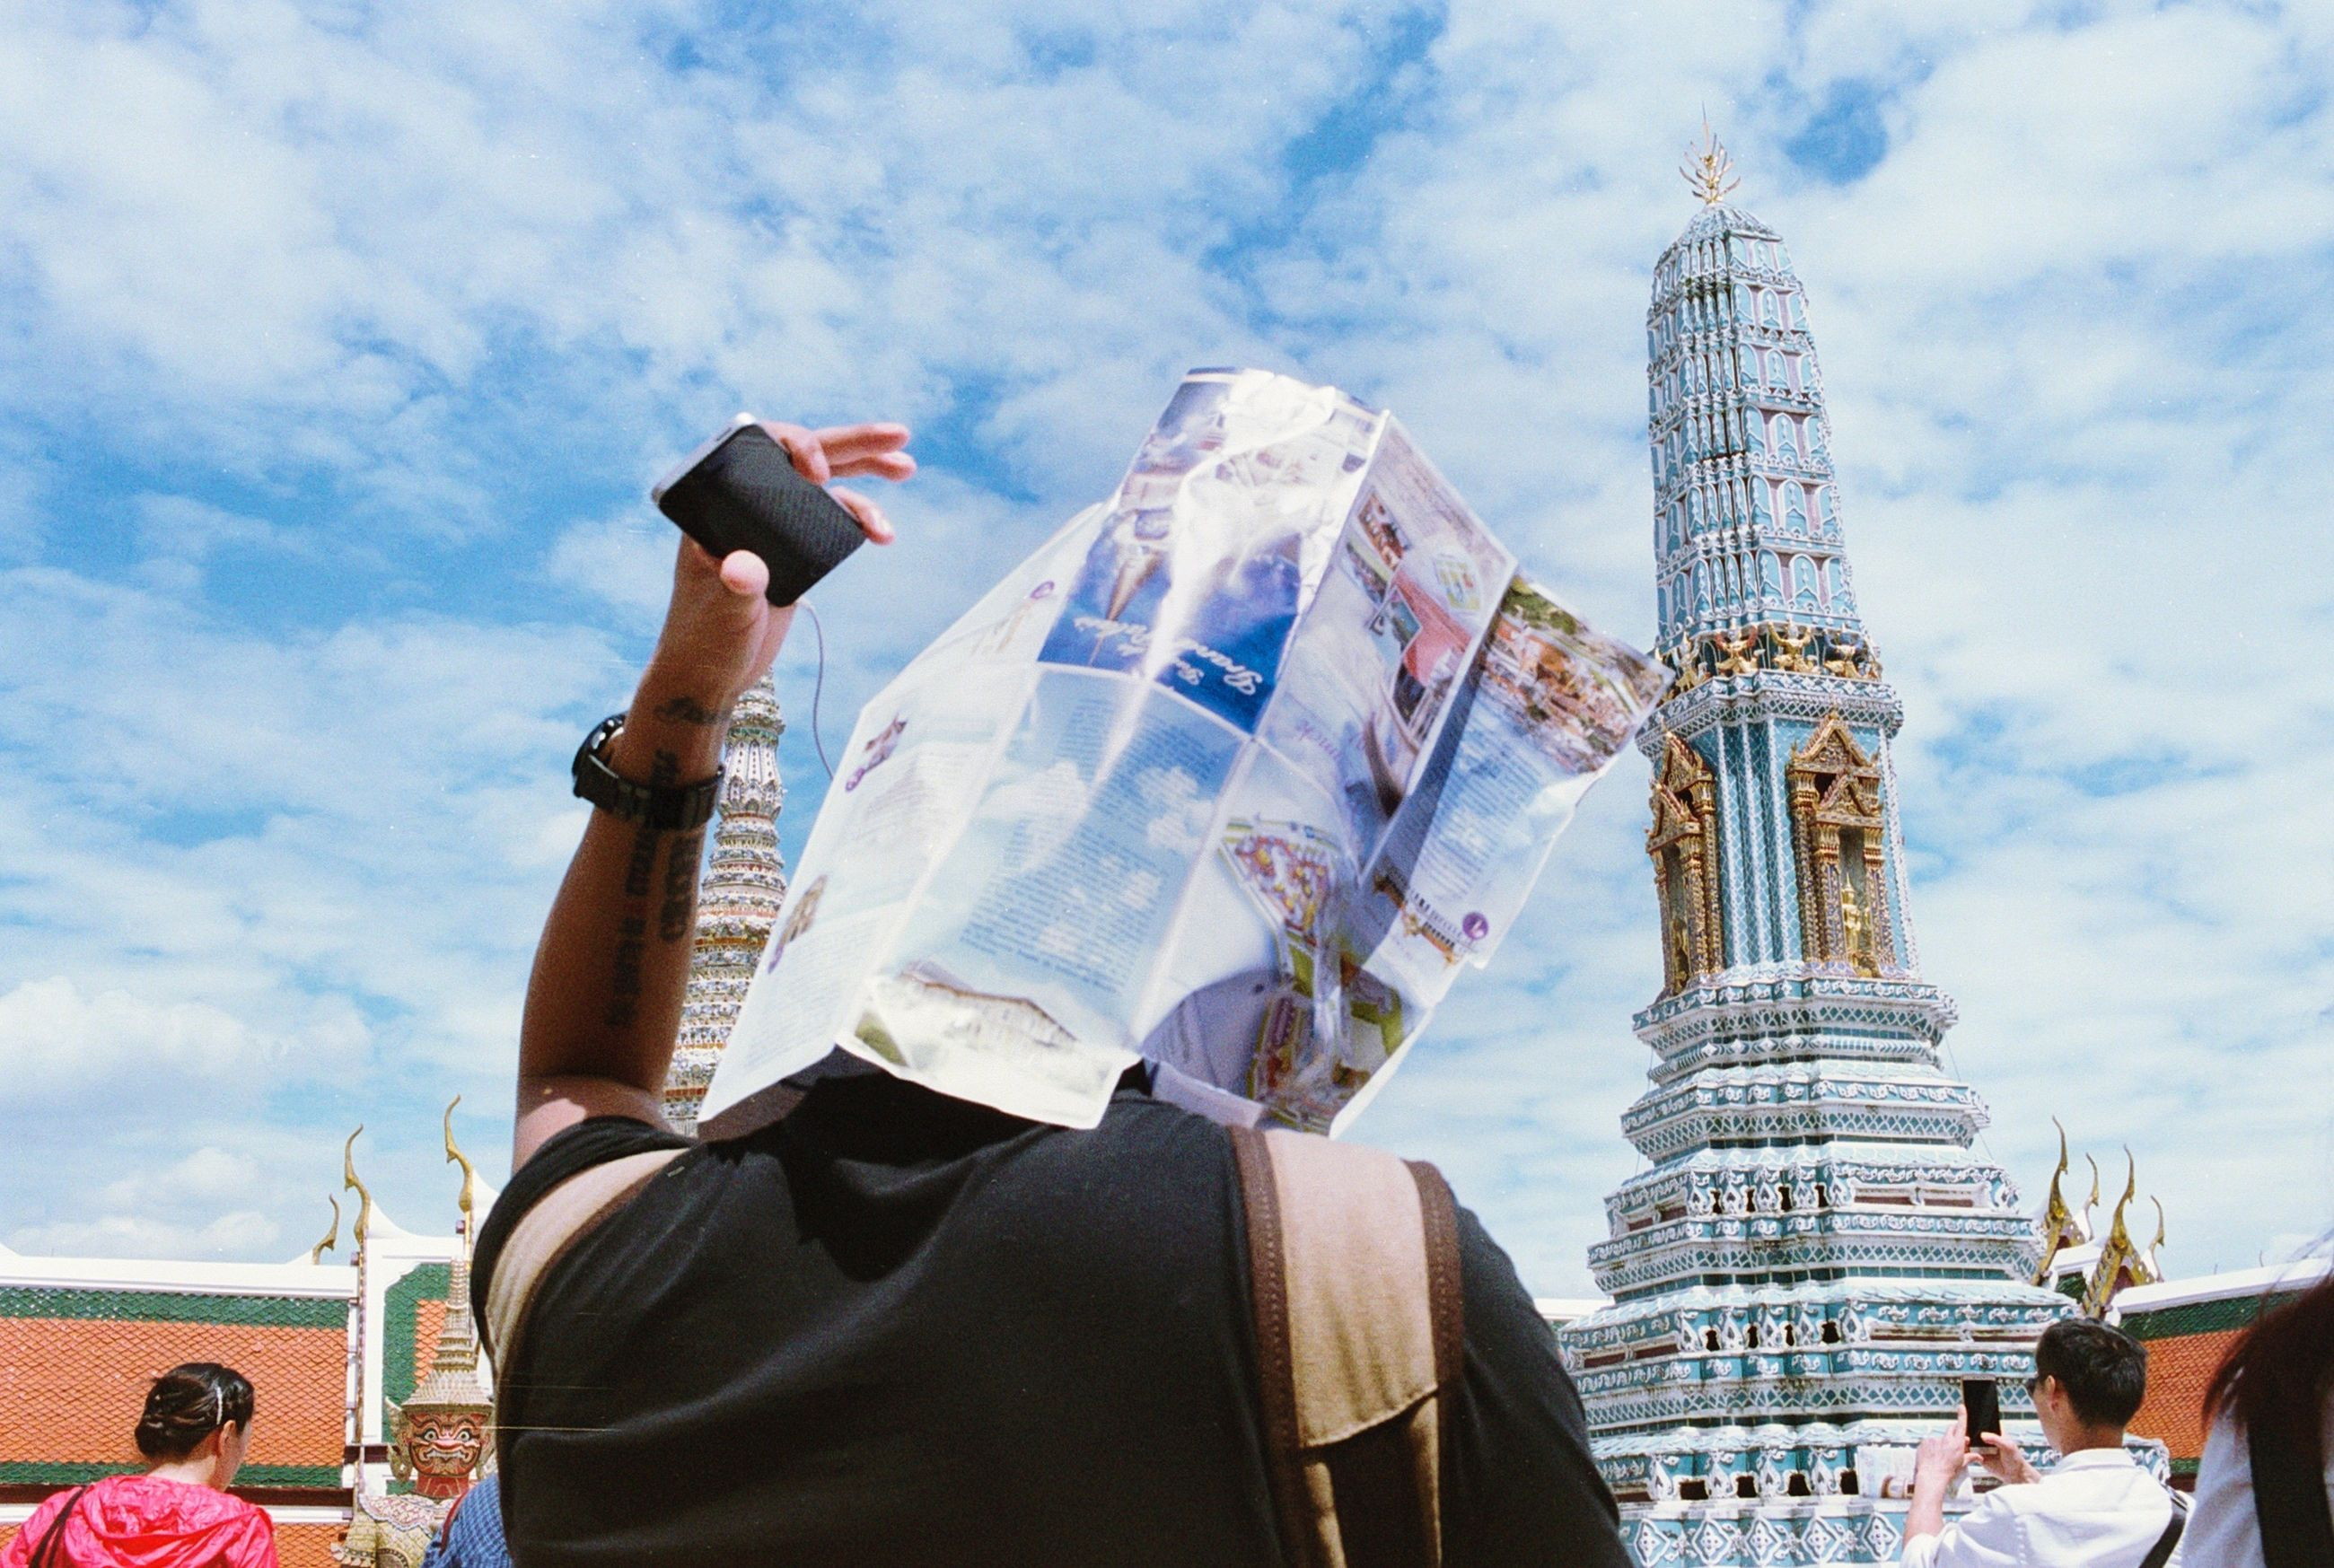 LOW ANGLE VIEW OF WOMAN STANDING AGAINST EIFFEL TOWER